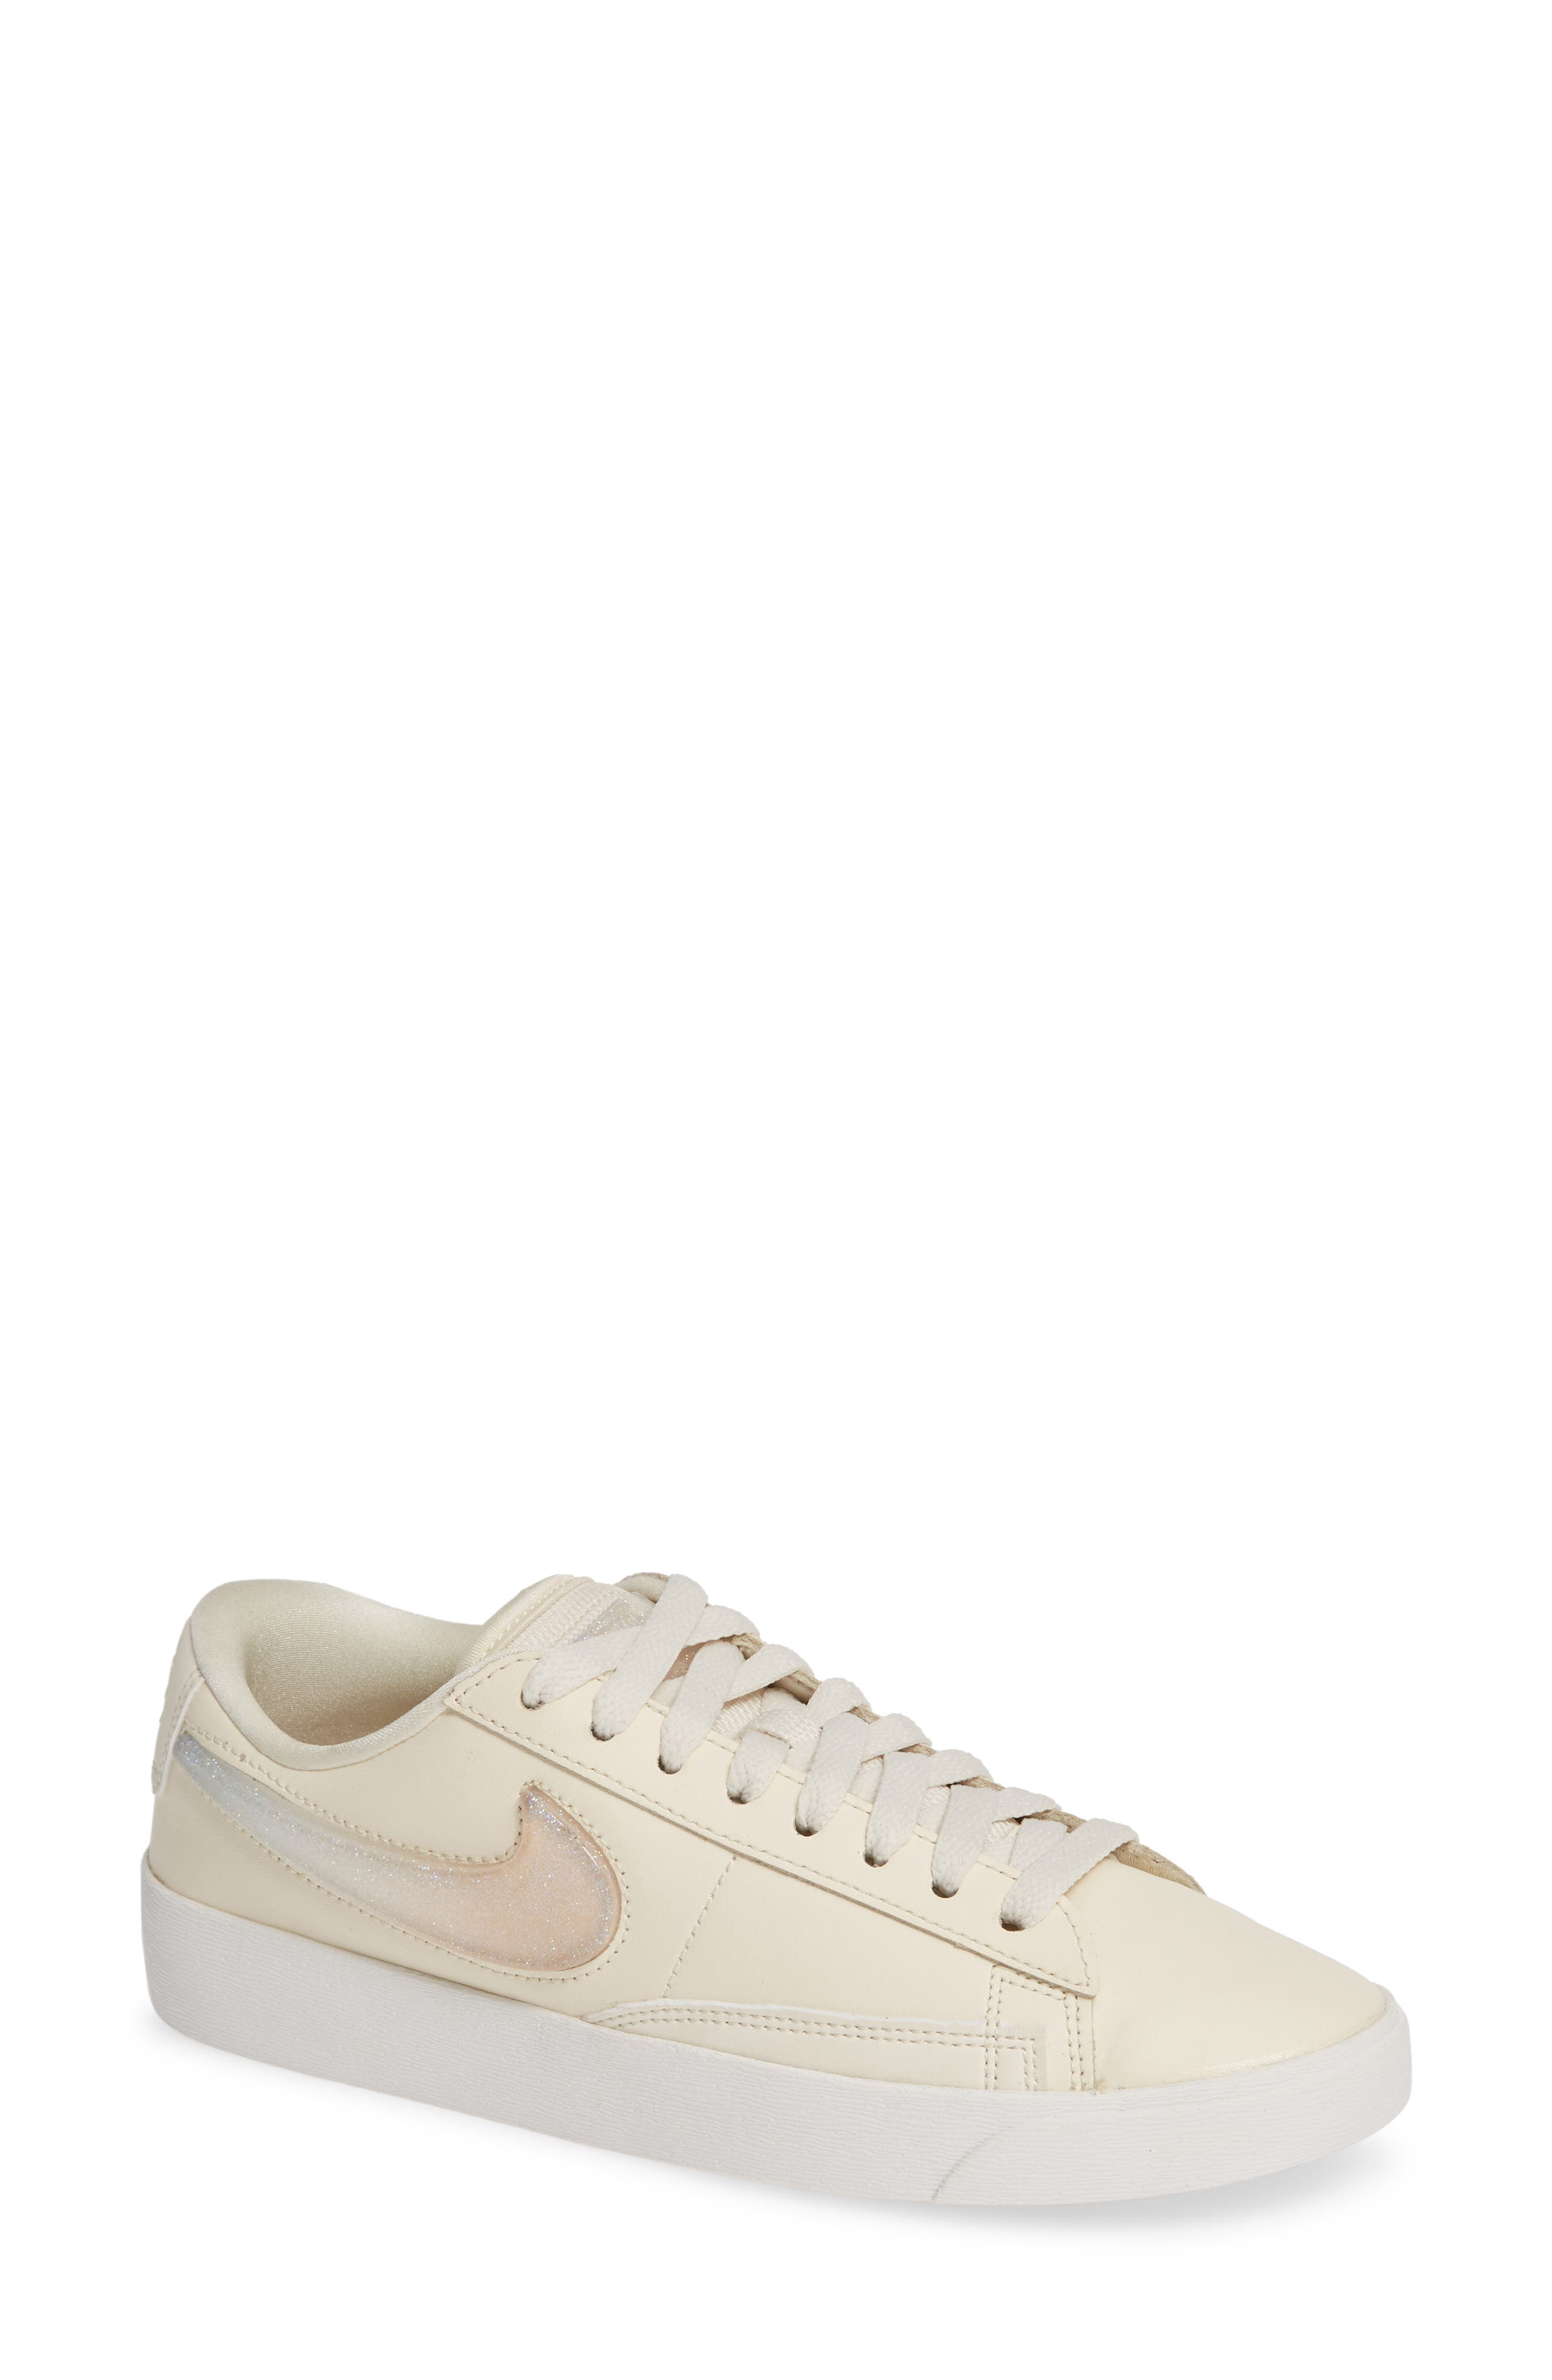 Blazer Low LX Sneaker, Main, color, PALE IVORY/ GUAVA ICE/ WHITE